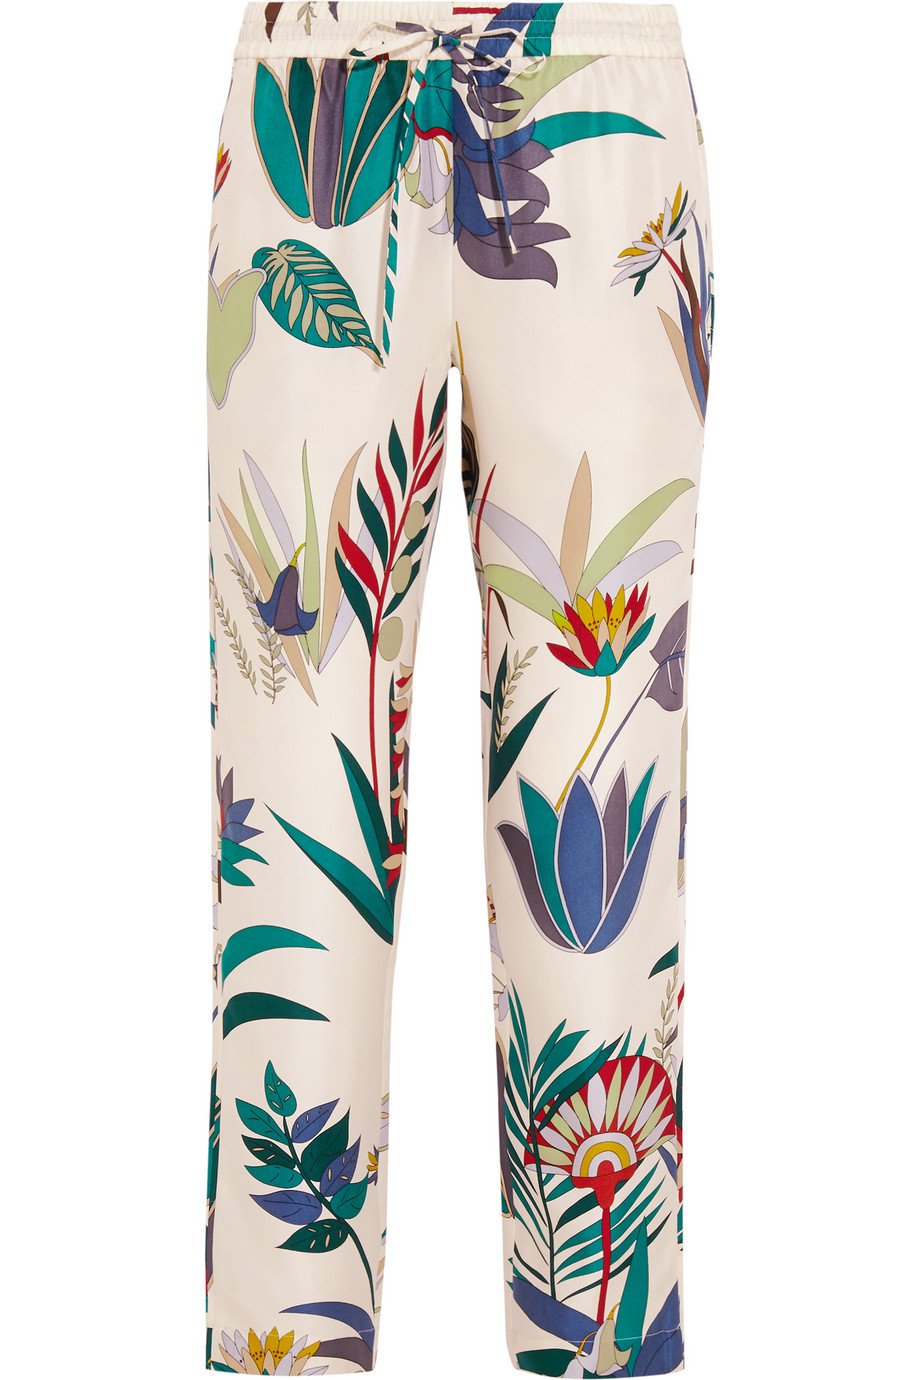 Tory Burch Adele Printed Silk-Twill Tapered Pants, White, Women's, Size: 0